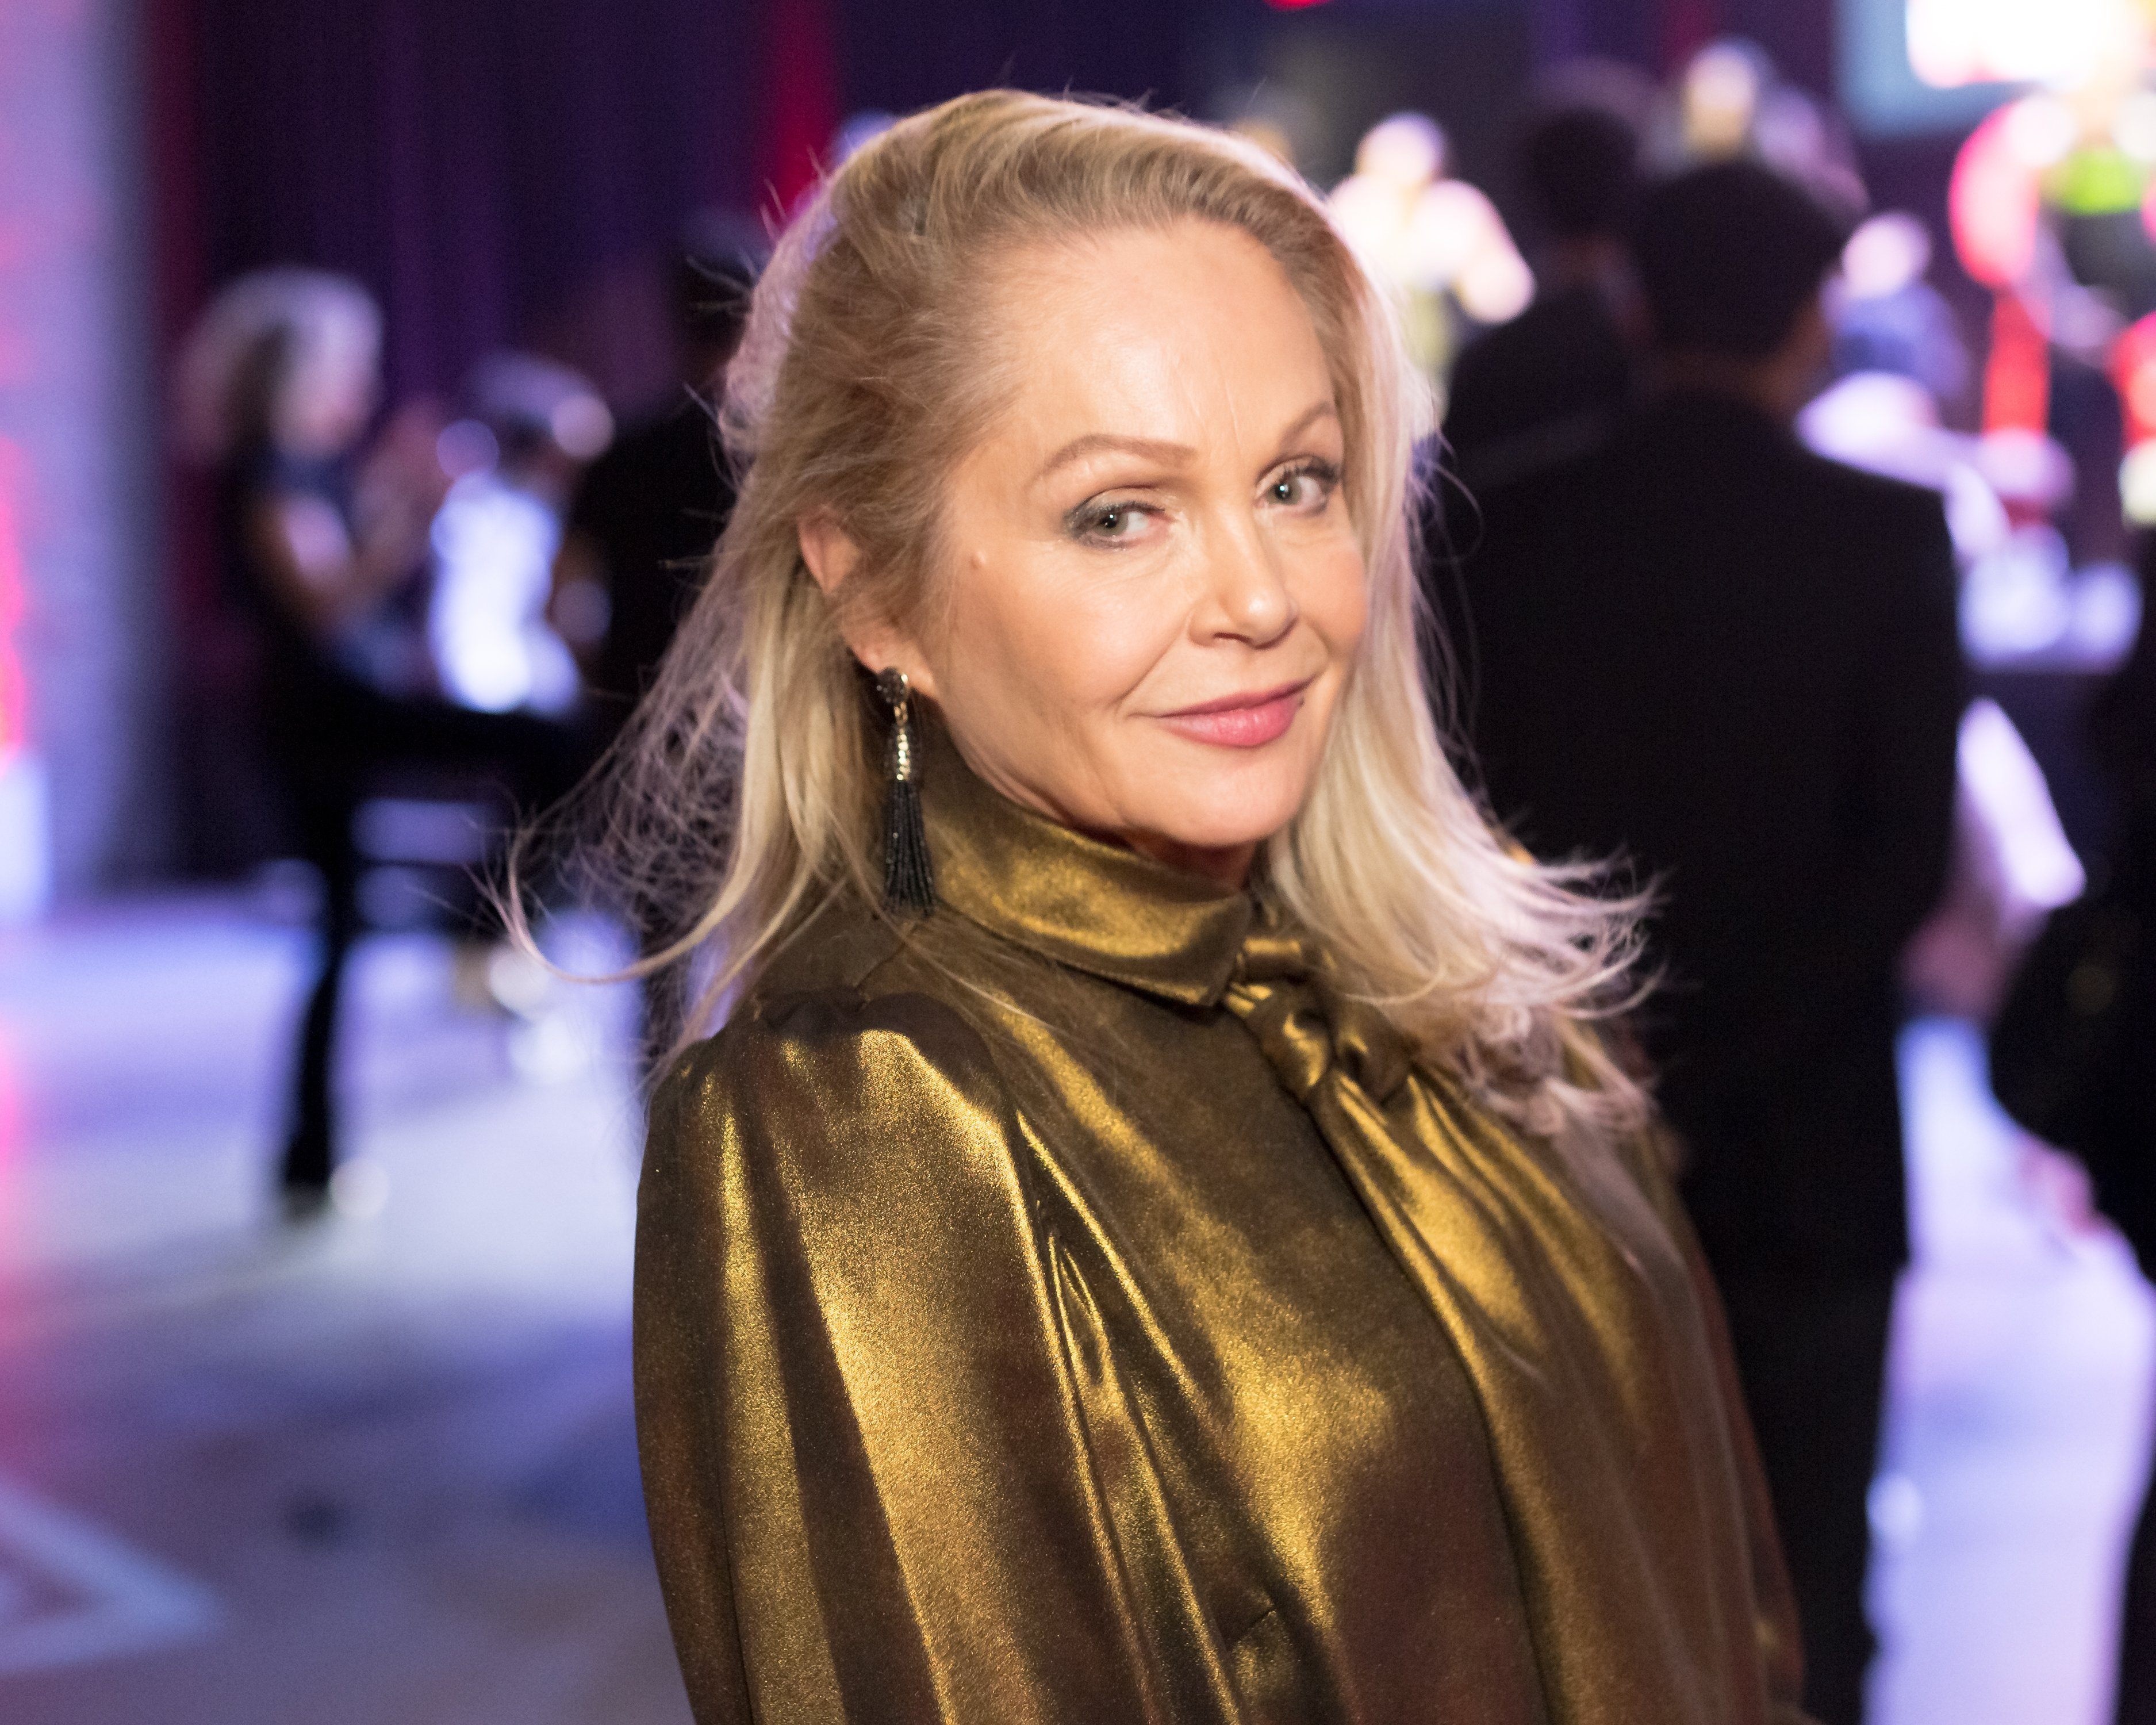 Charlene Tilton attends the Charmaine Blake Presents The Faber Ryan Youth Foundation Gala at Live House Hollywood on October 12, 2019 | Photo: GettyImages